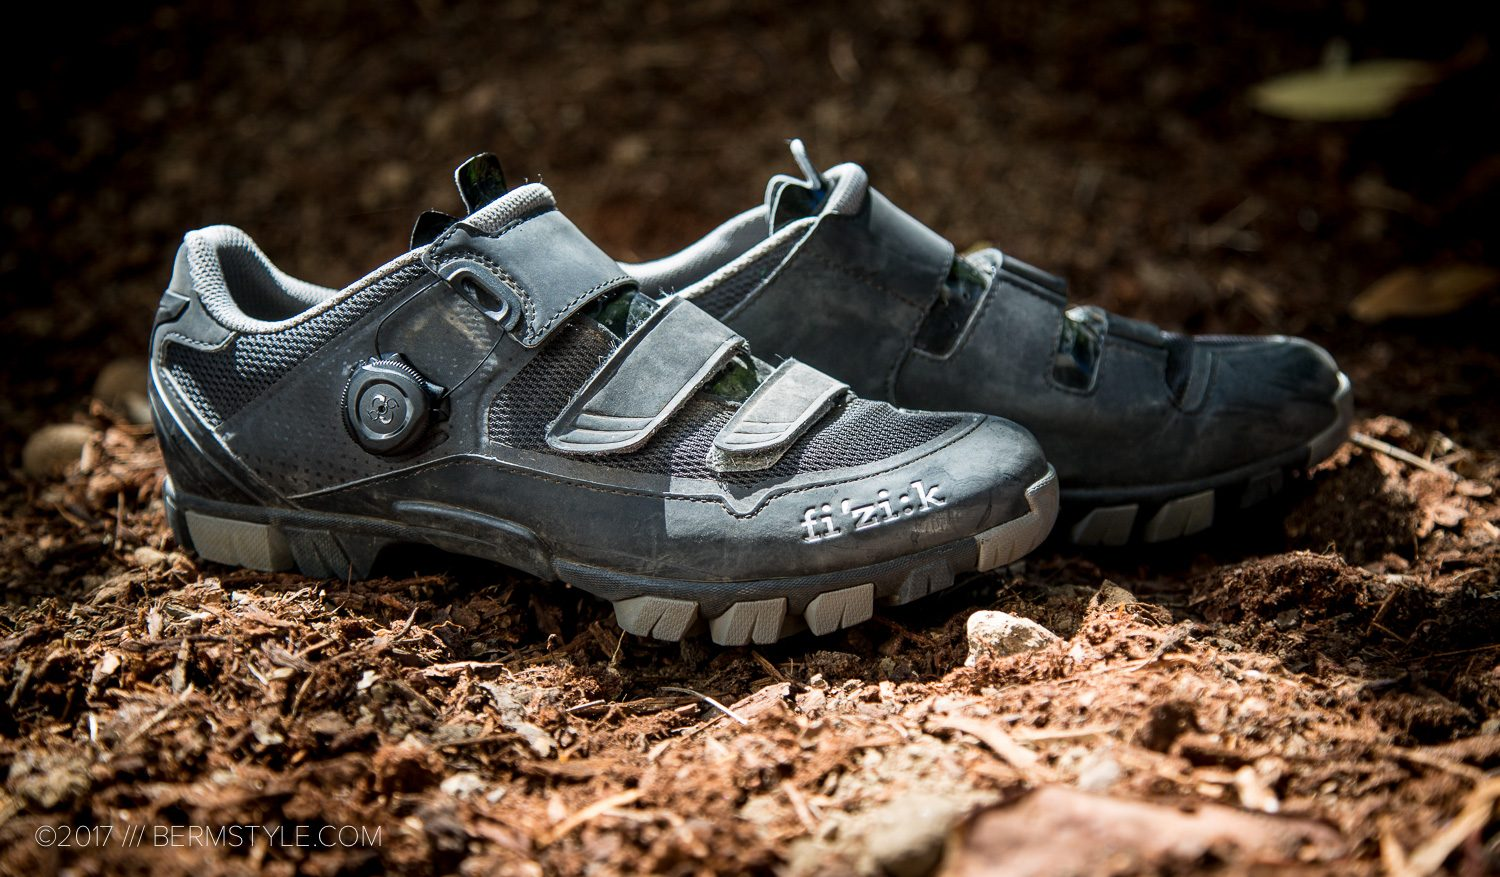 Review: Fizik M6B Uomo MTB Shoes